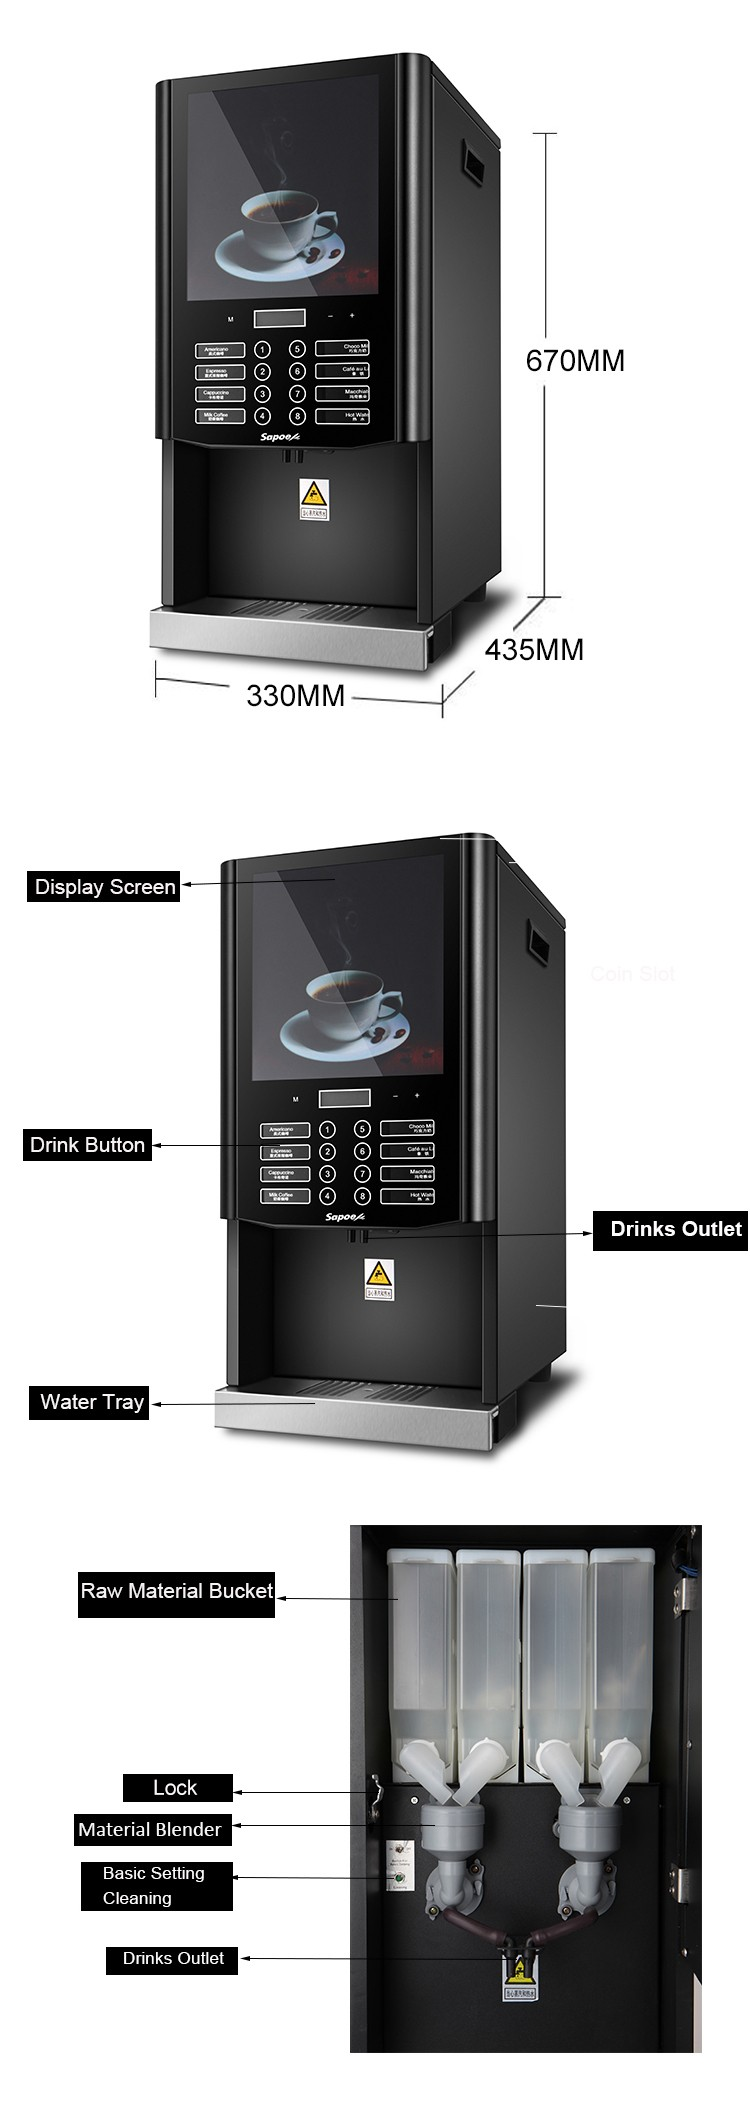 Sapoe high speed revolution instant espresso fully automatic commercial coffee machine